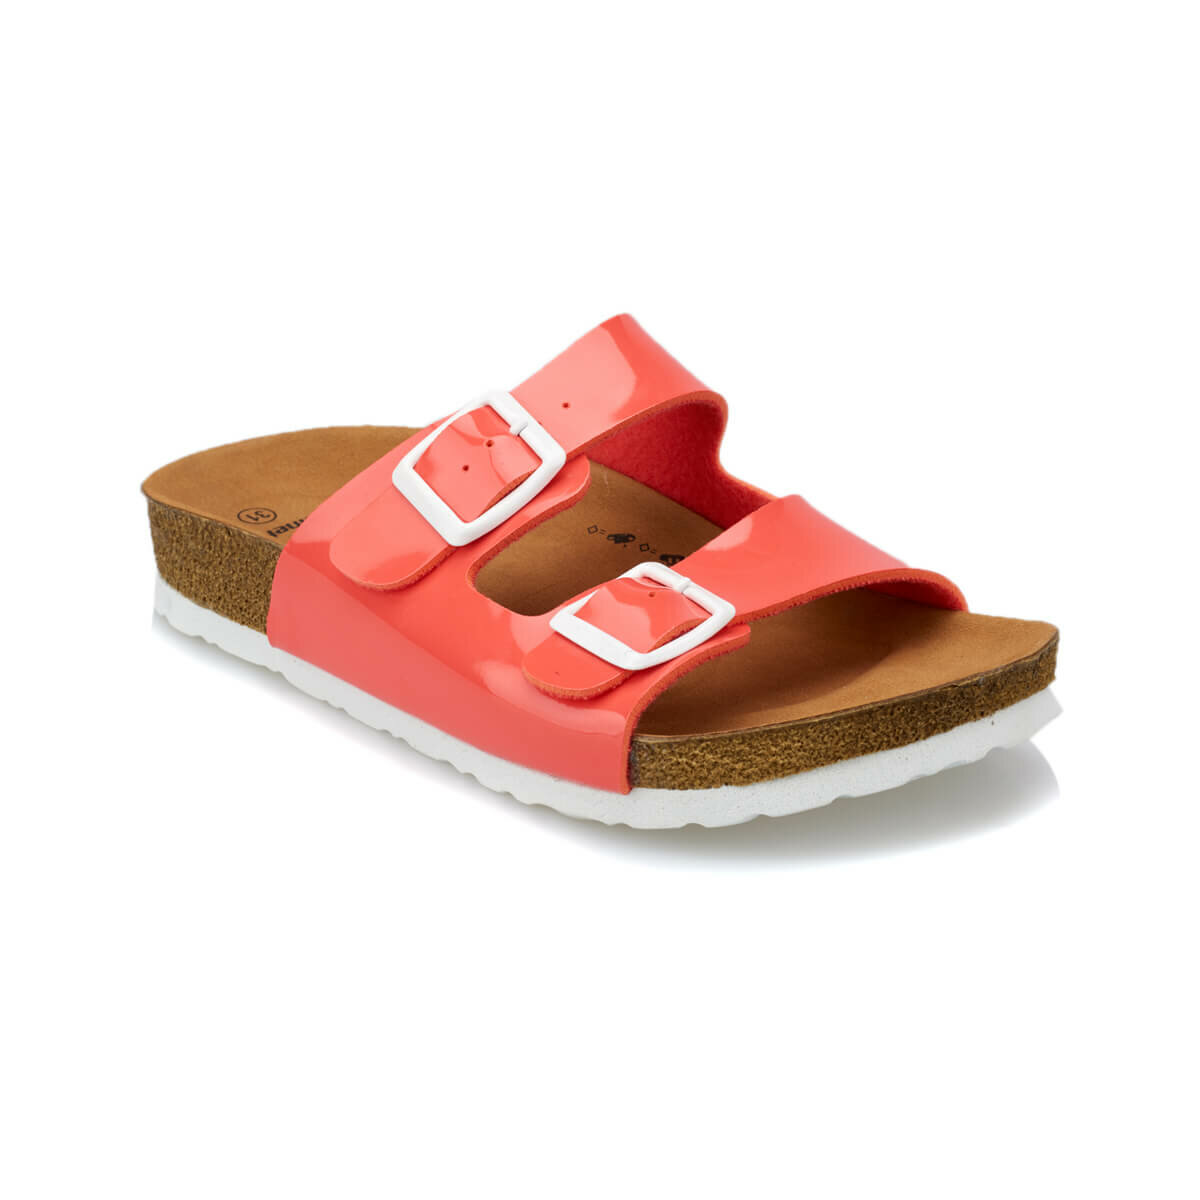 FLO ERON Coral Female Child Slippers KINETIX